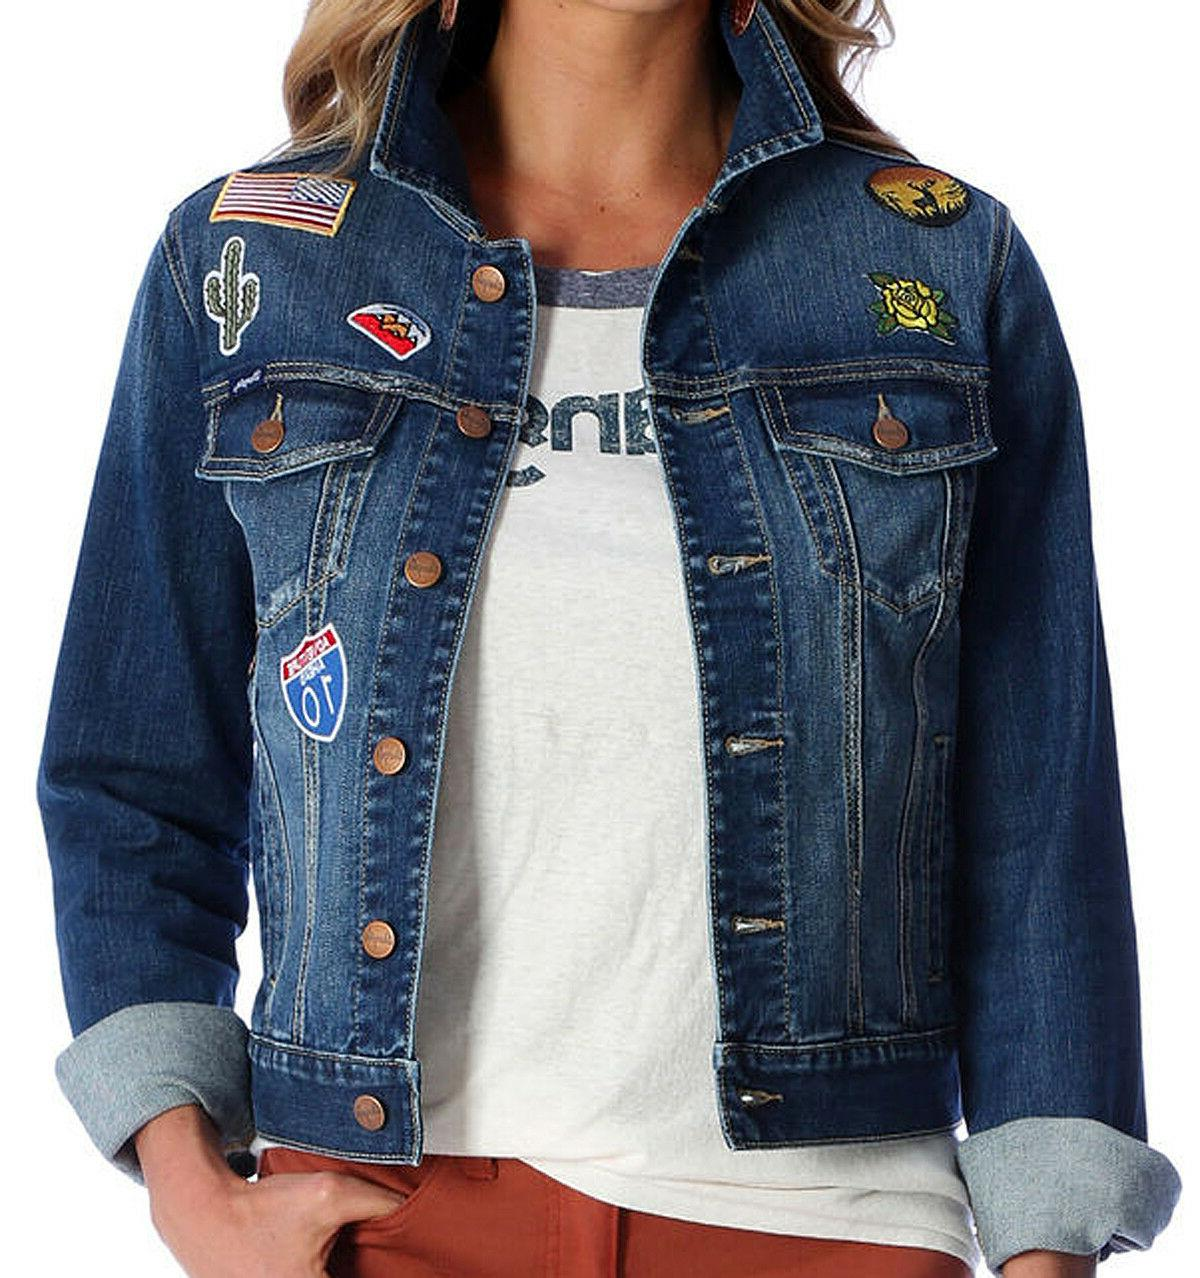 NWT Women's WRANGLER Jean Denim Patch Jacket LWJ300D Large N